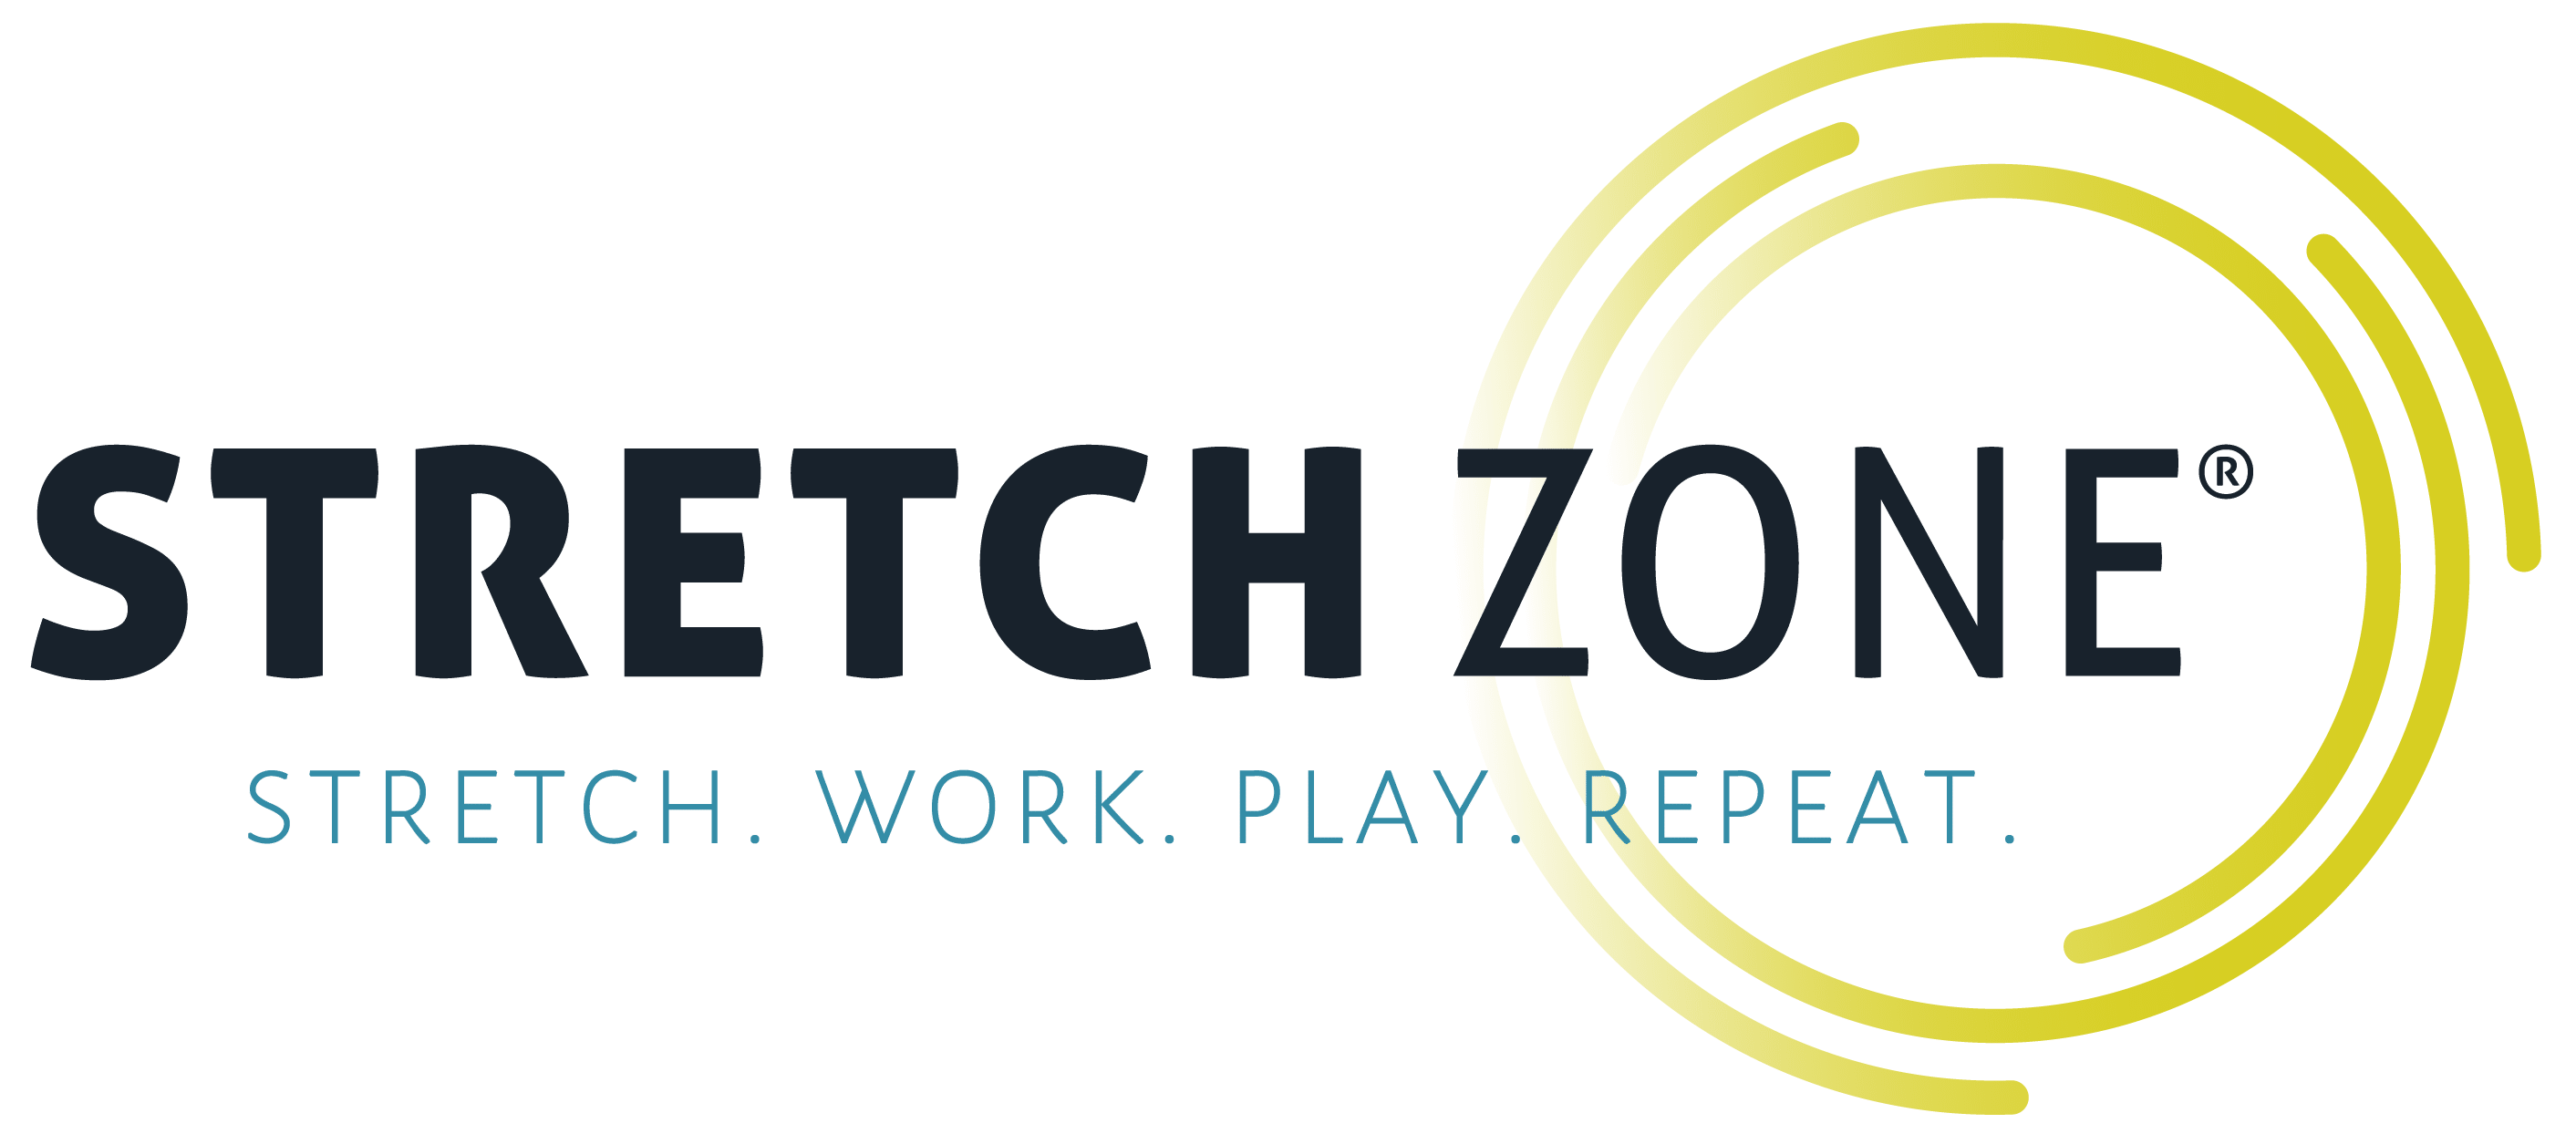 Stretch Zone will be at the 2019 Founder's Cup!